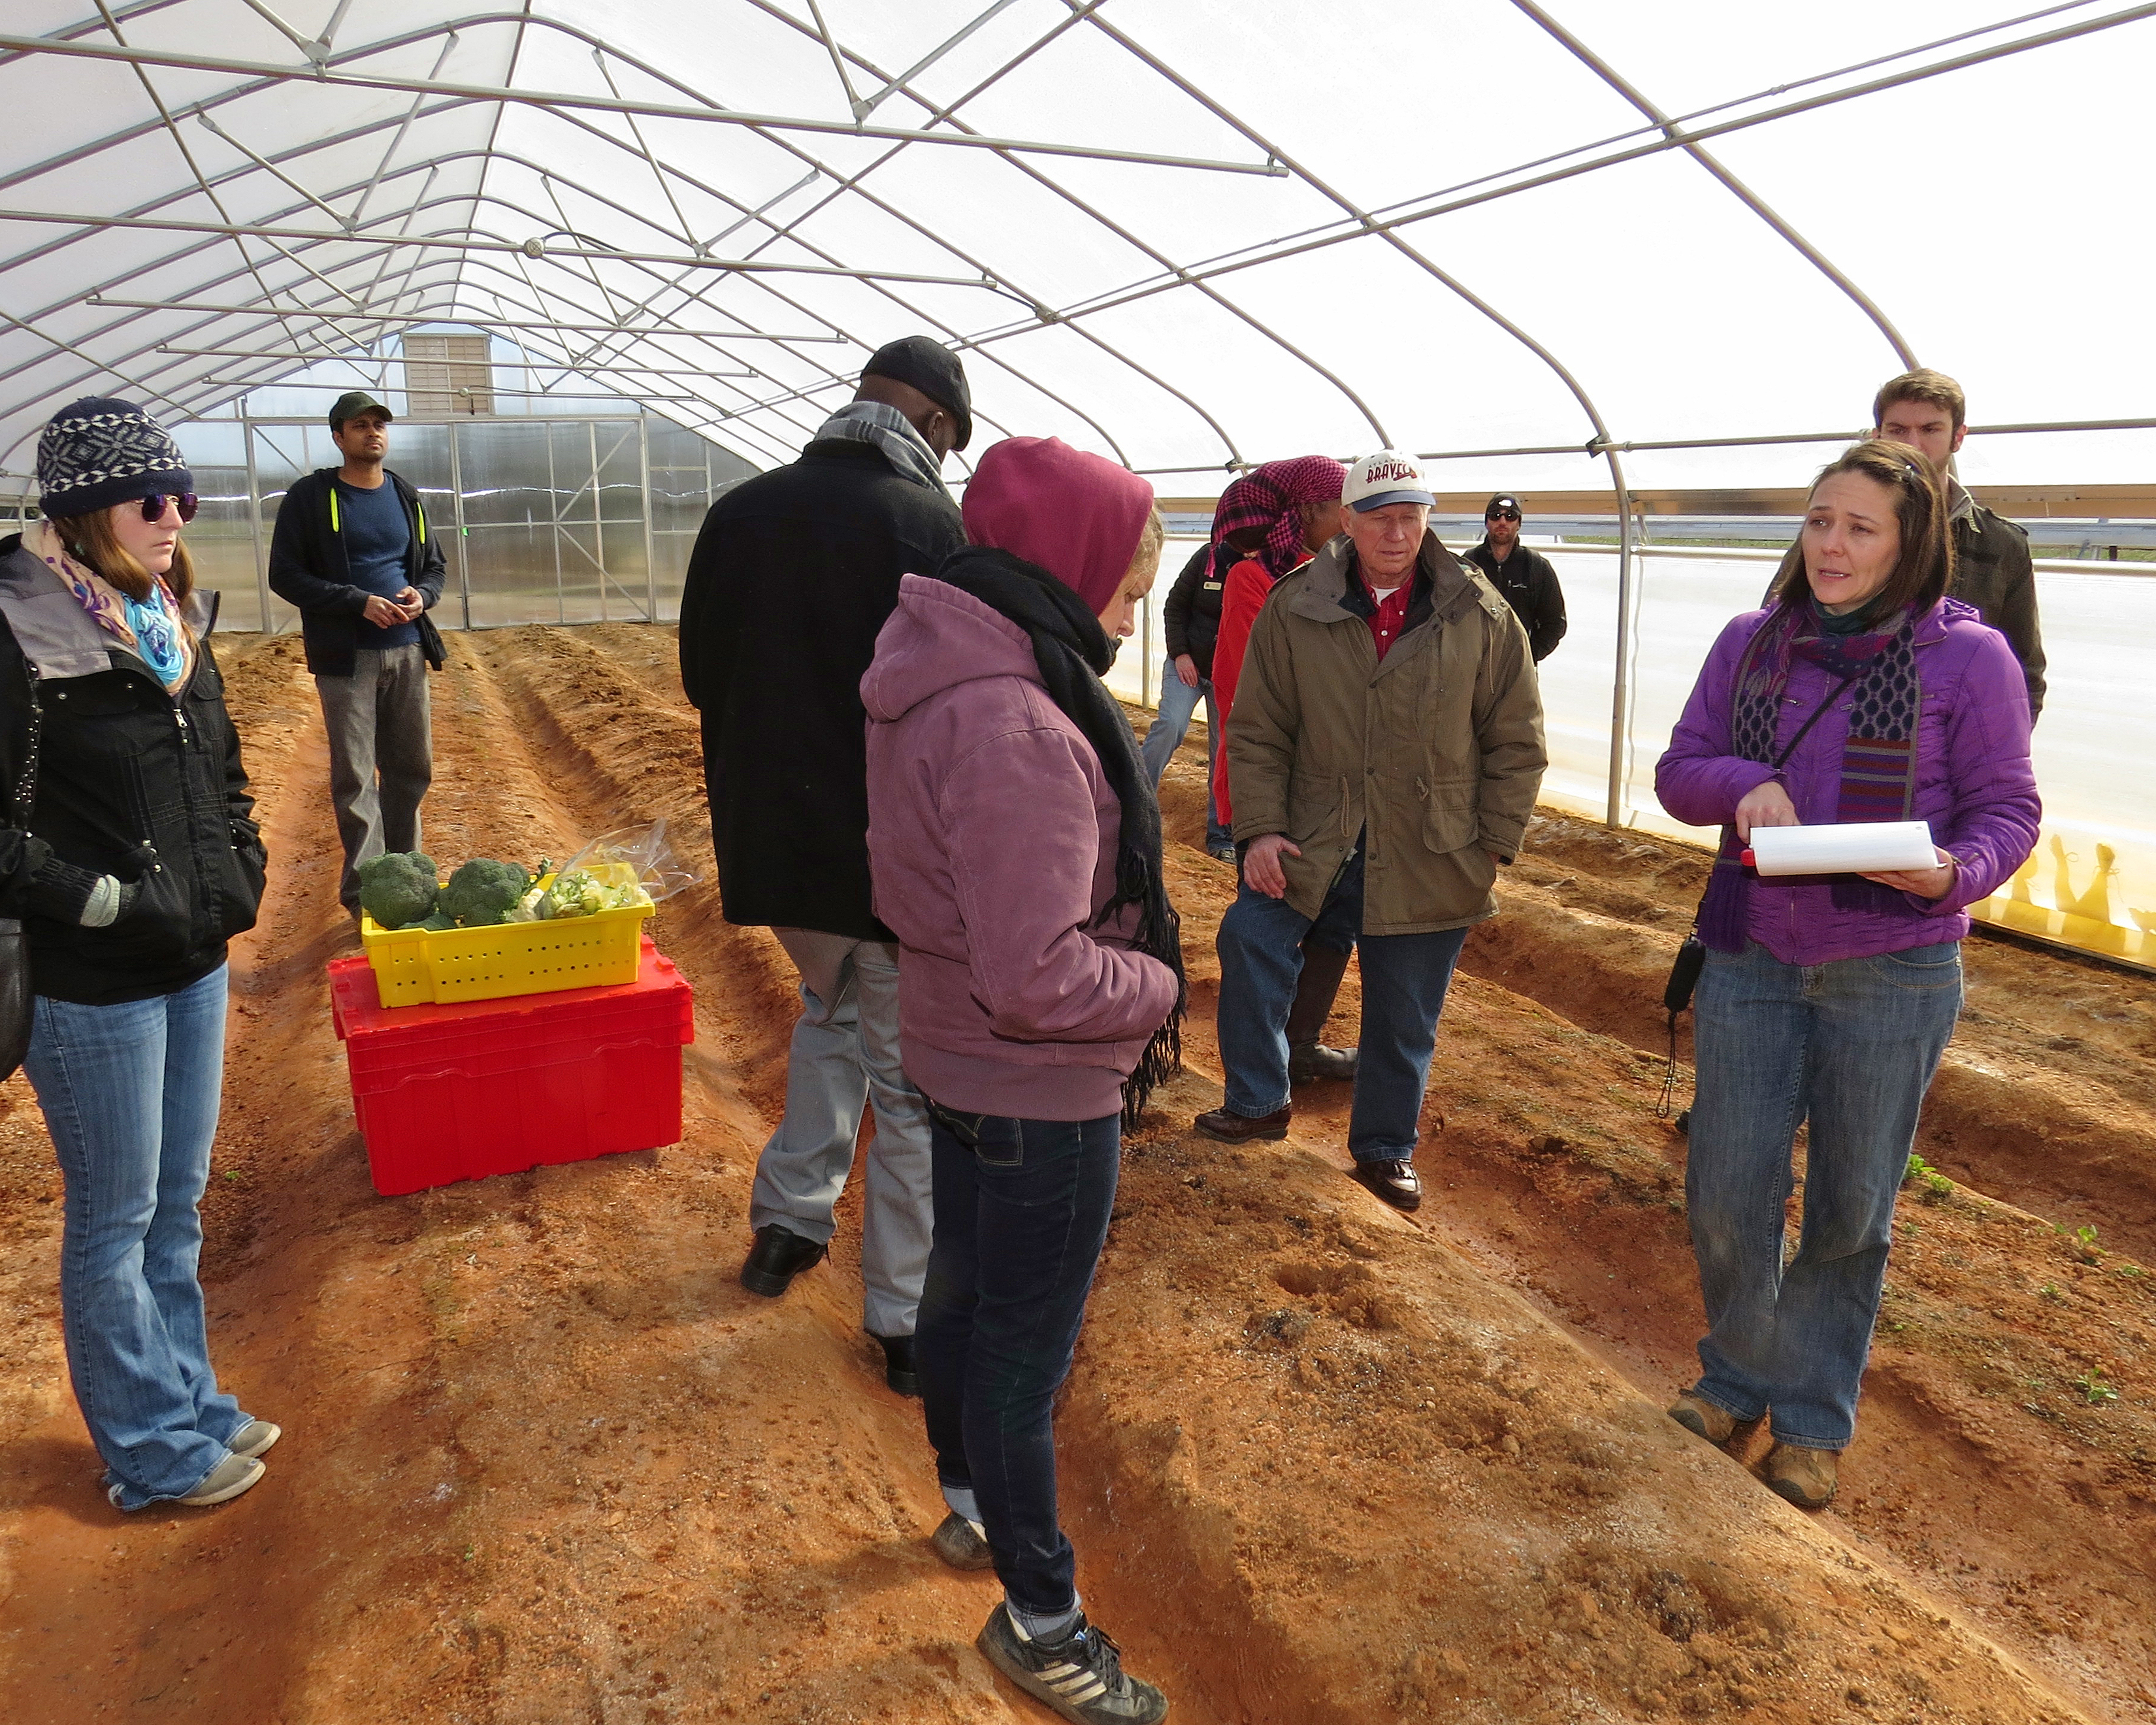 Assistant Professor of Horticulture Suzanne O'Connell leads a tour of her organic production high tunnels at the Durham Horticulture Farm as part of the 2015 Georgia Organics Conference, Feb. 20-21.